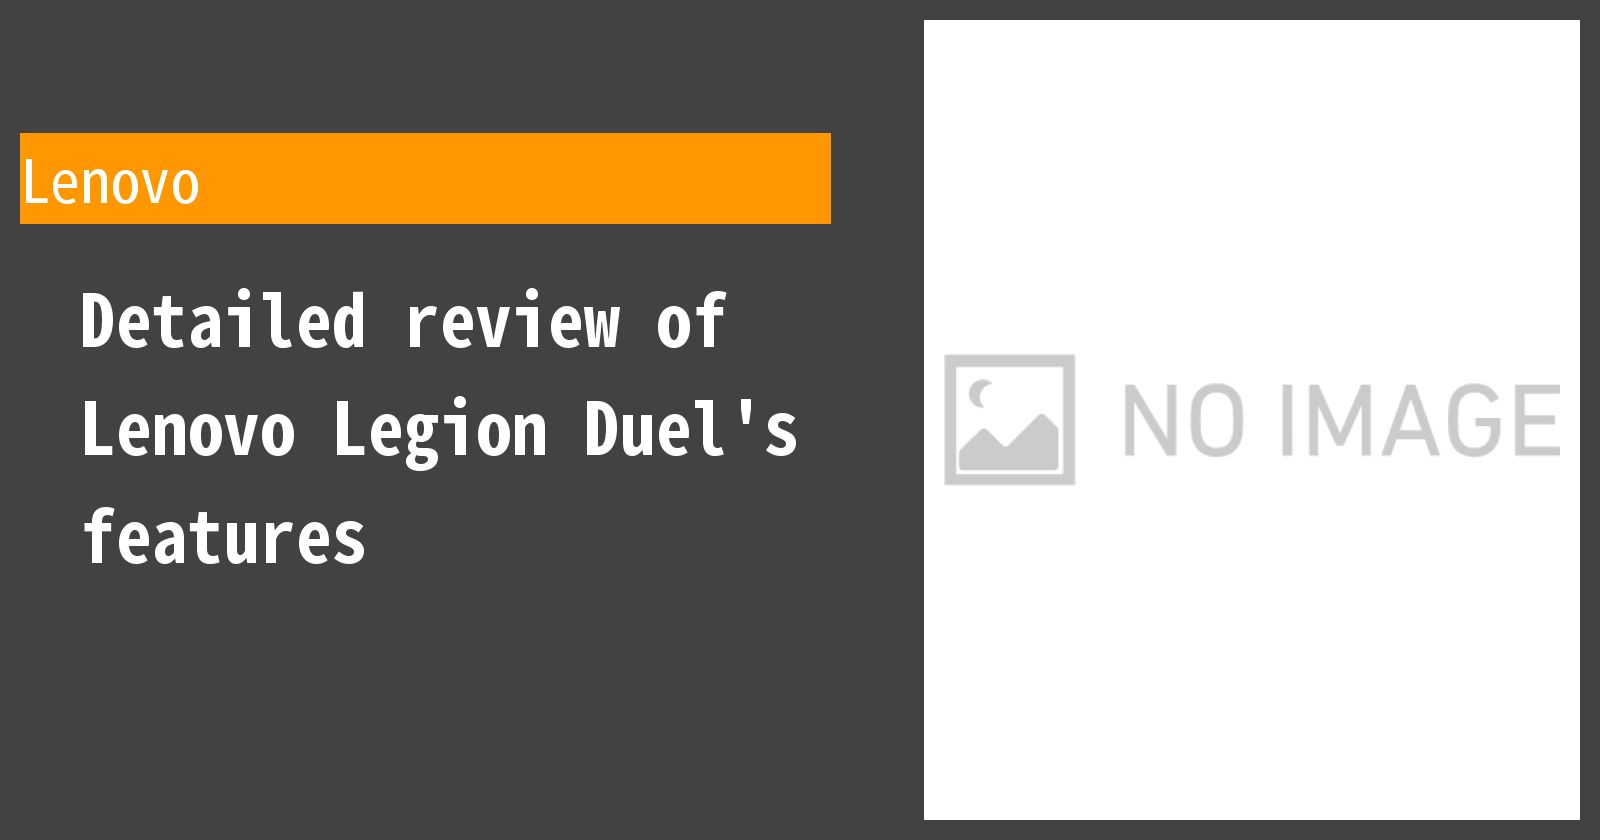 Detailed review of Lenovo Legion Duel's features